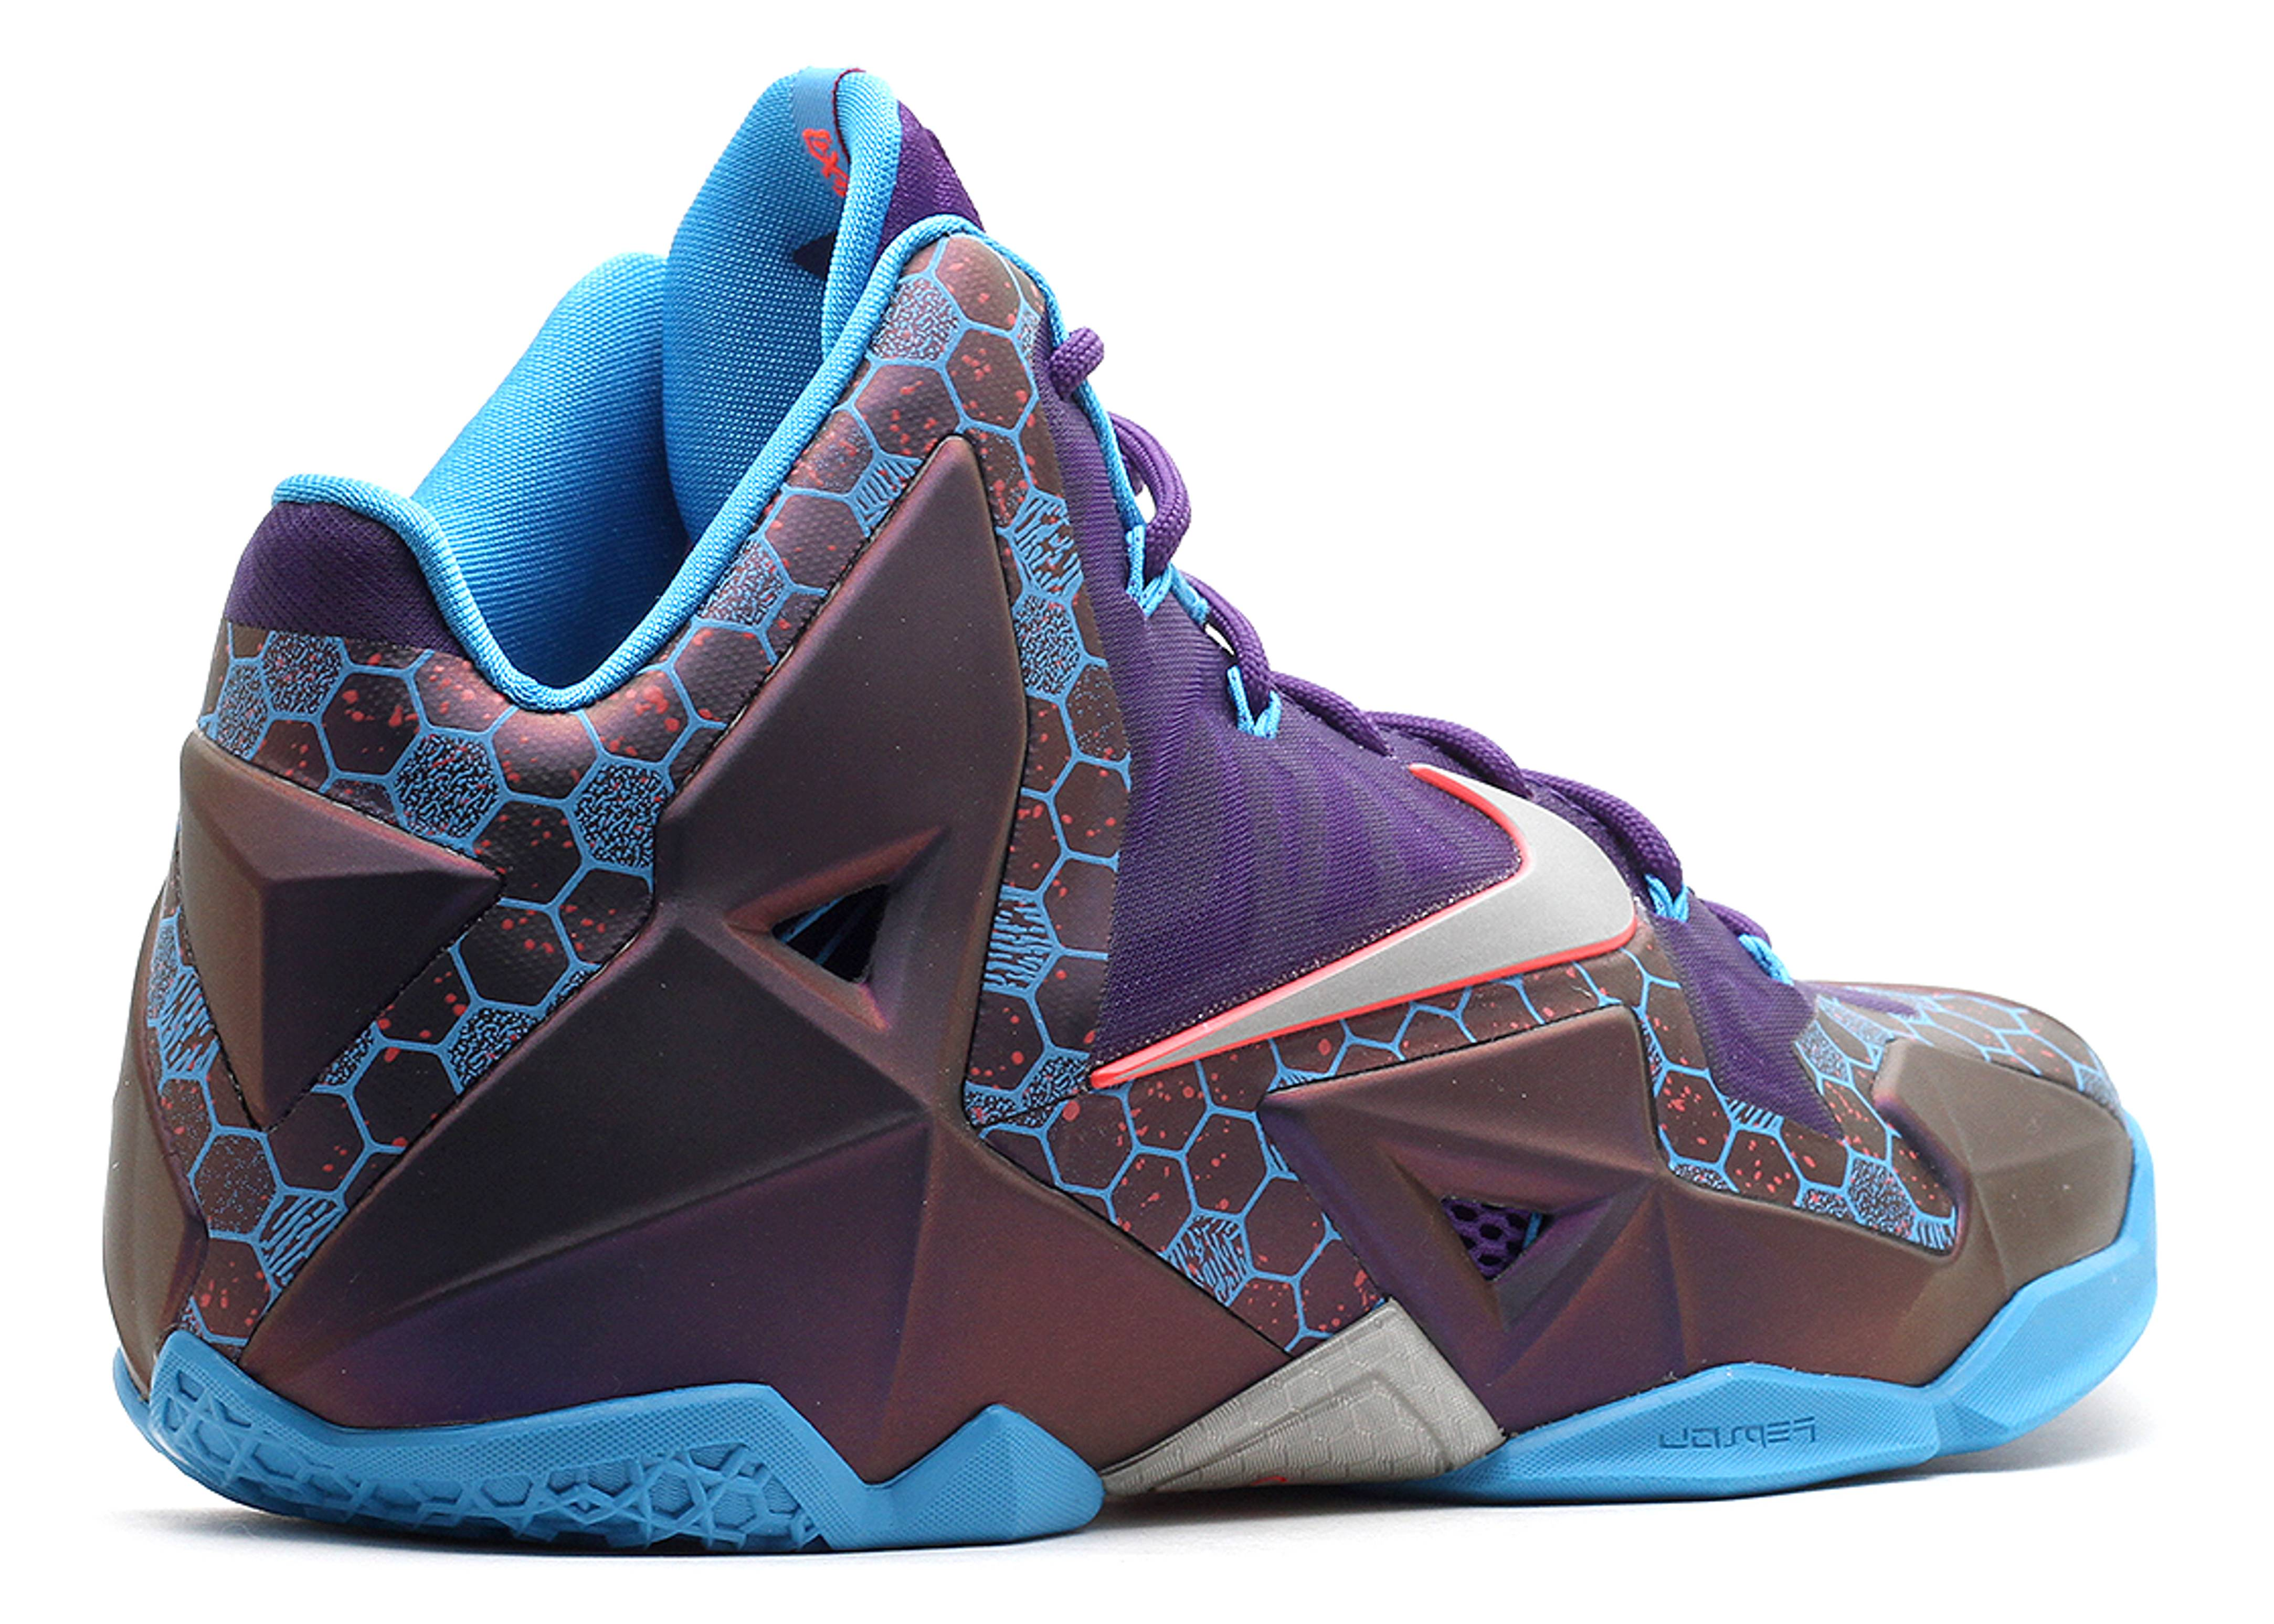 "Hornets"" Nike LeBron 11 - TheShoeGame.com - Sneakers & Information"